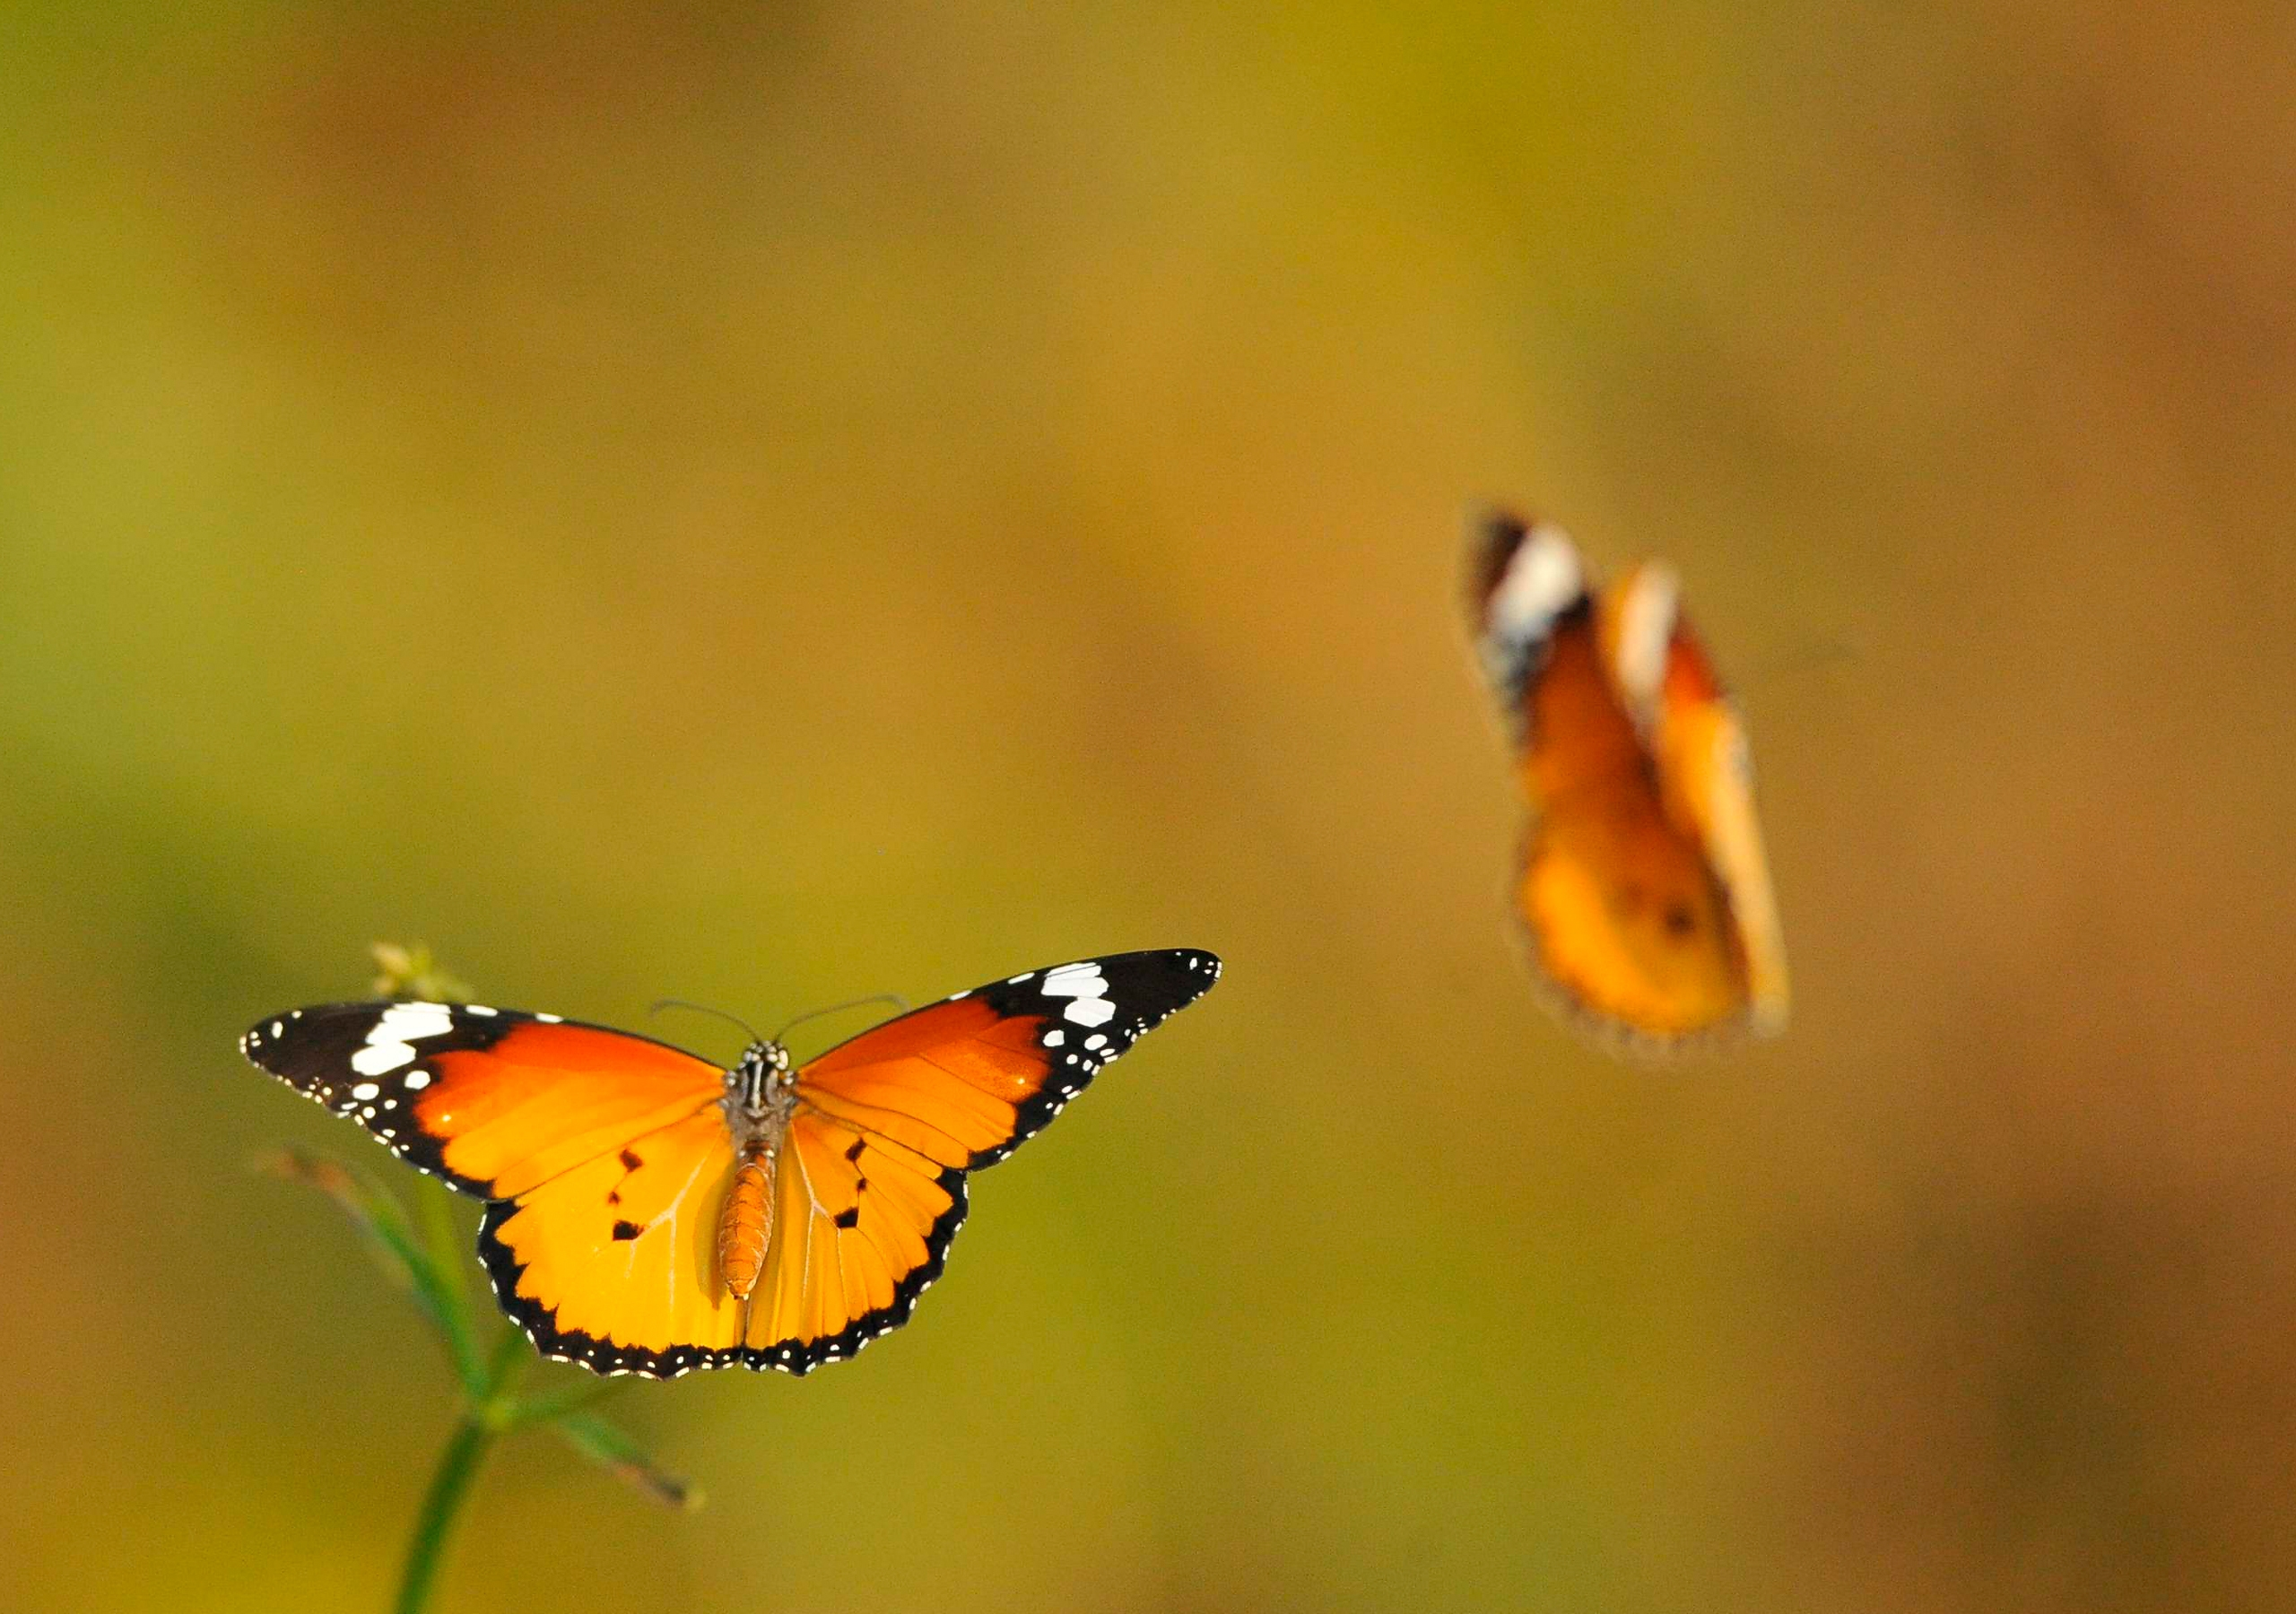 55793 Screensavers and Wallpapers Butterflies for phone. Download Macro, Butterflies, Greased, Smeared, Flight, Shine, Light pictures for free